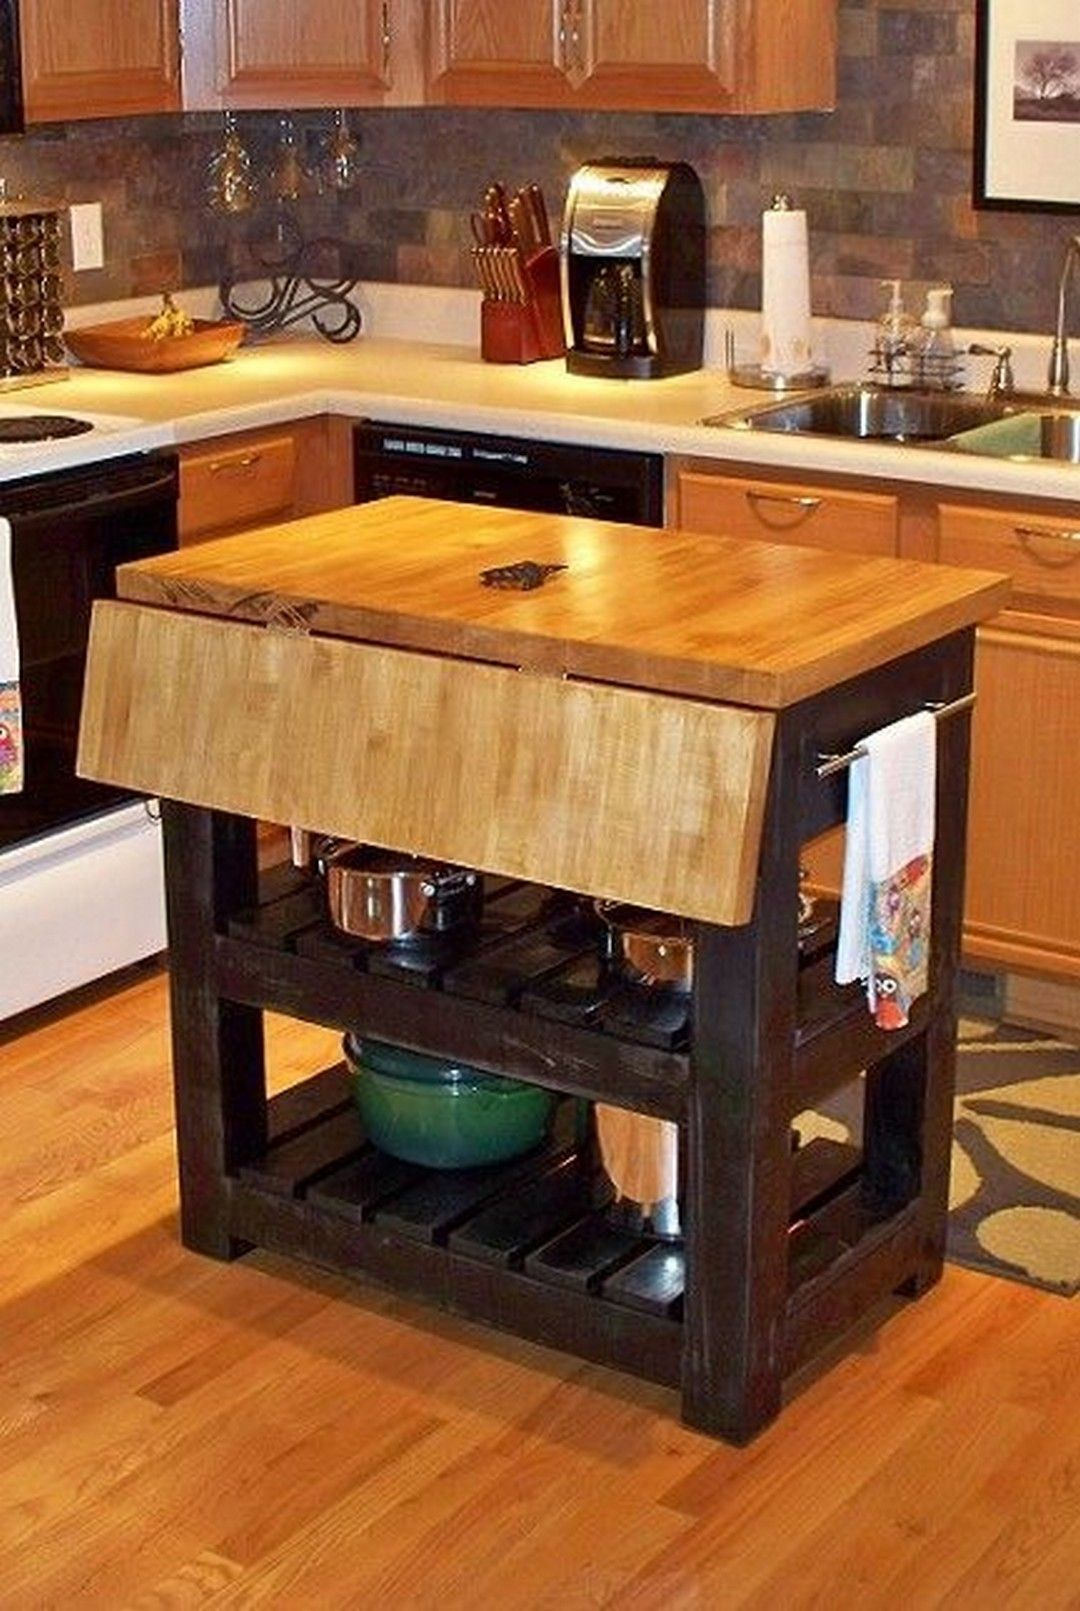 Browse Photos Of Small Kitchen Designs Discover Inspiration For Your Small Kitchen Remodel Or Mobile Kitchen Island Kitchen Design Small Small Kitchen Tables